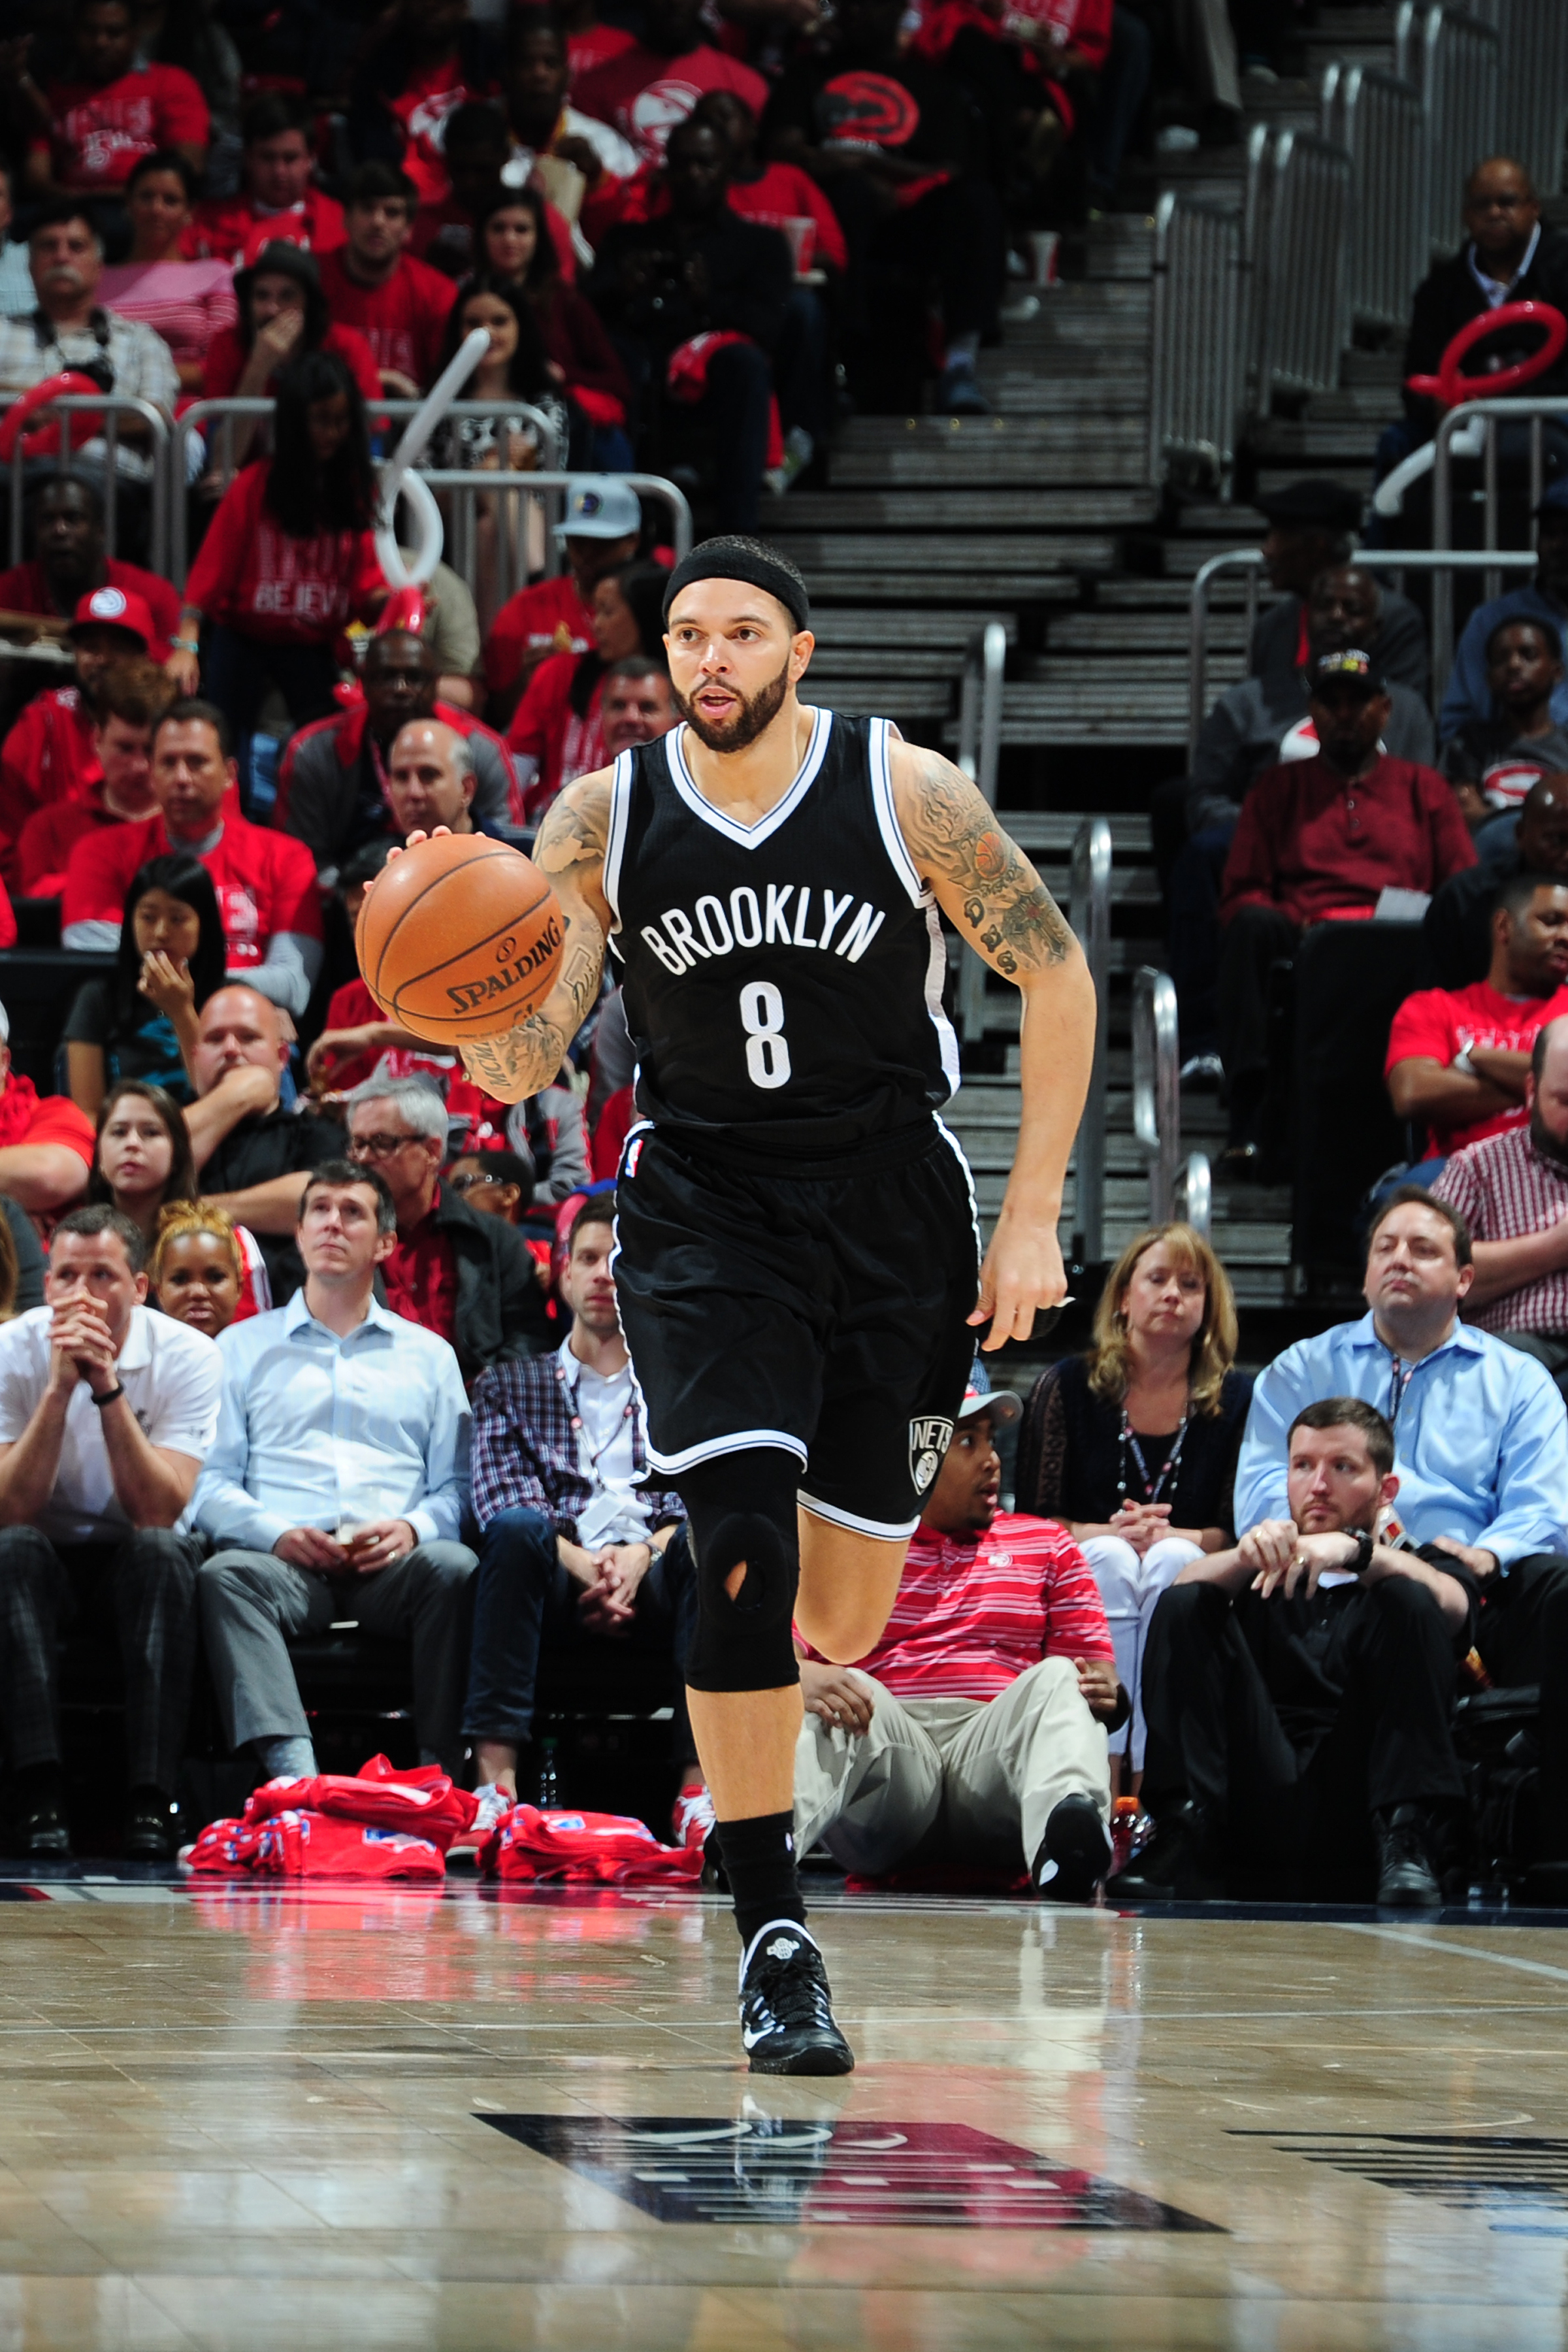 ATLANTA, GA - APRIL 29:  Deron Williams #8 of the Brooklyn Nets handles the ball against the Atlanta Hawks in Game Five of the Eastern Conference Quarterfinals during the 2015 NBA Playoffs on April 29, 2015 at Philips Arena in Atlanta, Georgia.  (Photo by